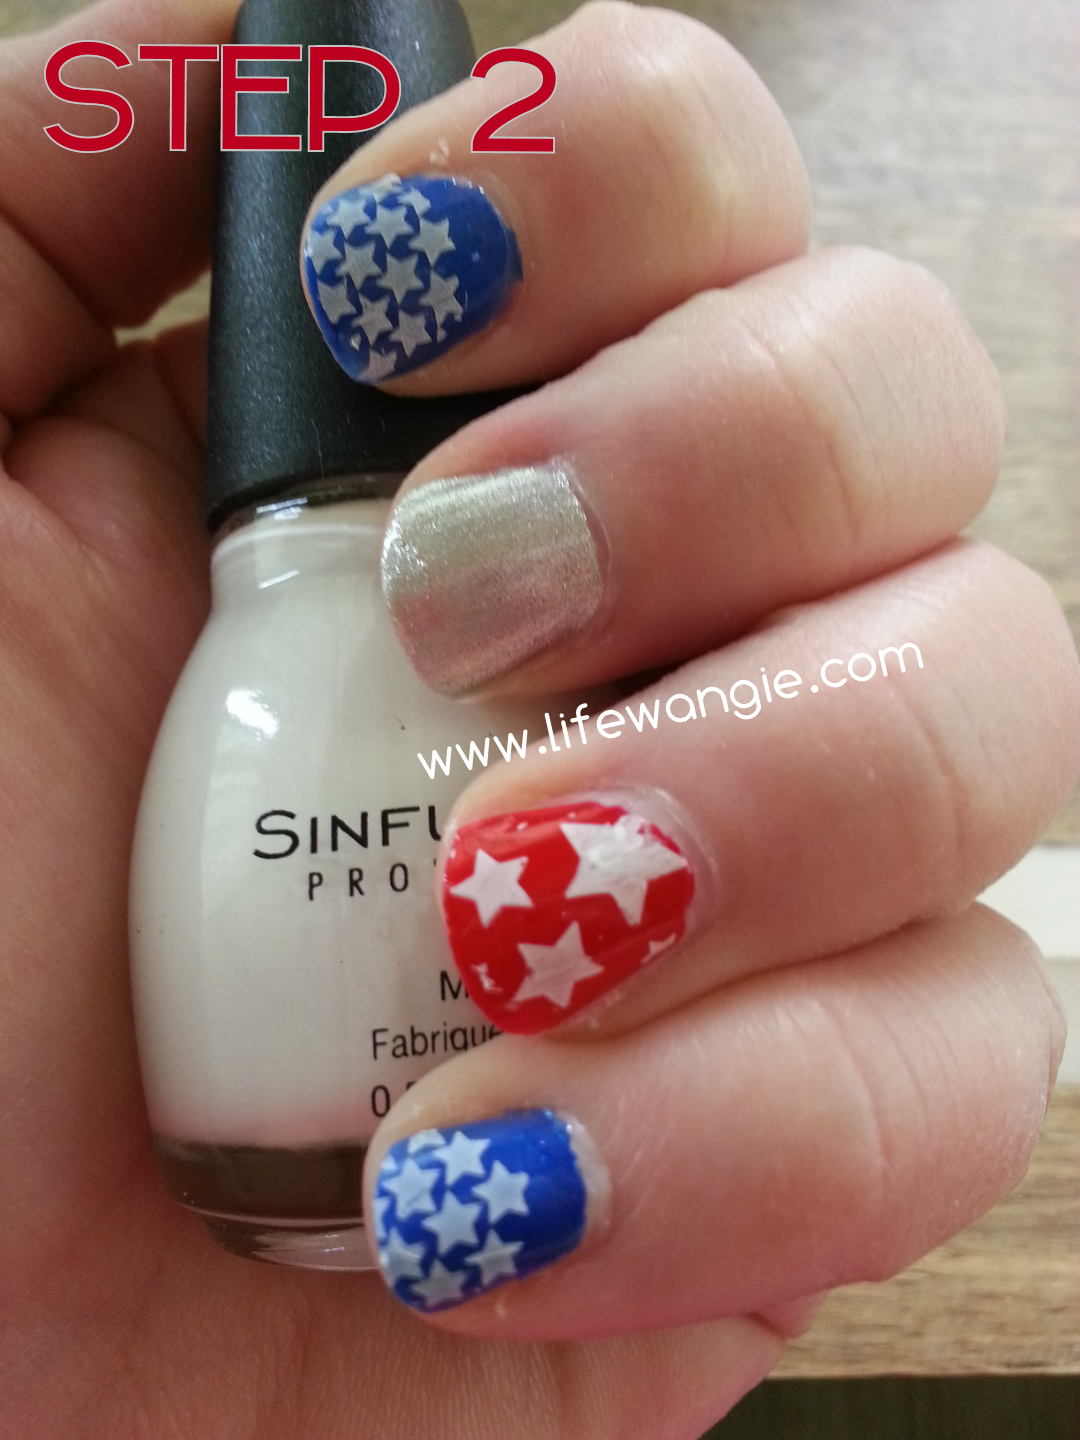 Nails are red, white blue and silver